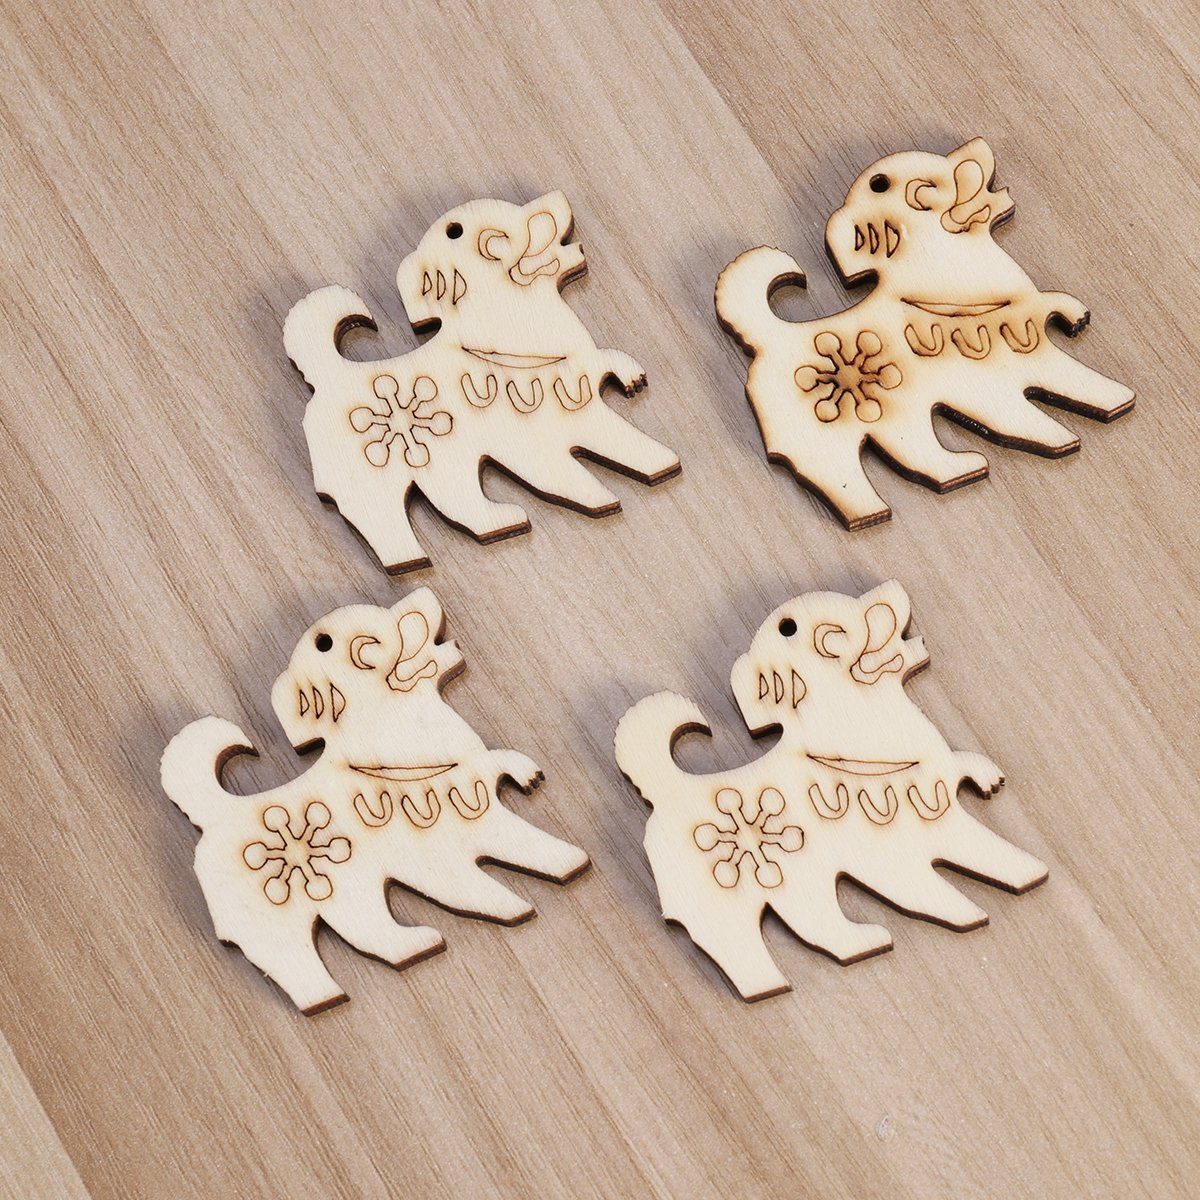 SUPVOX 10Pcs Unfinished Wood Cutout Wooden Dog Shape Natural Wood Pieces for DIY Arts Crafts Projects